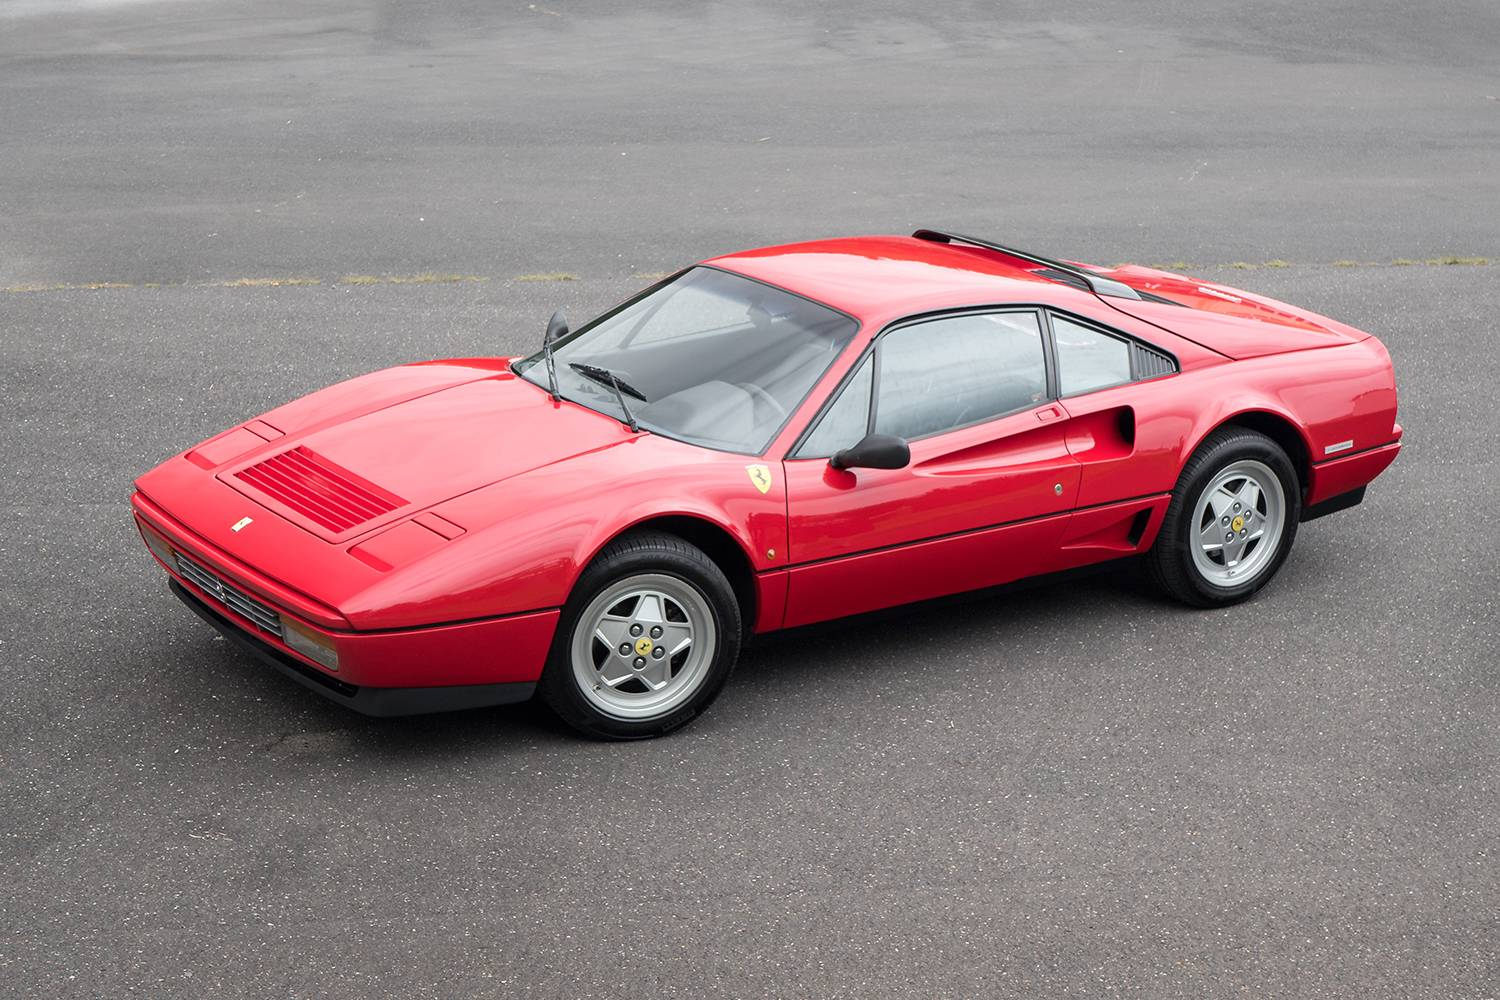 Ferrari 328 GTB Turbo